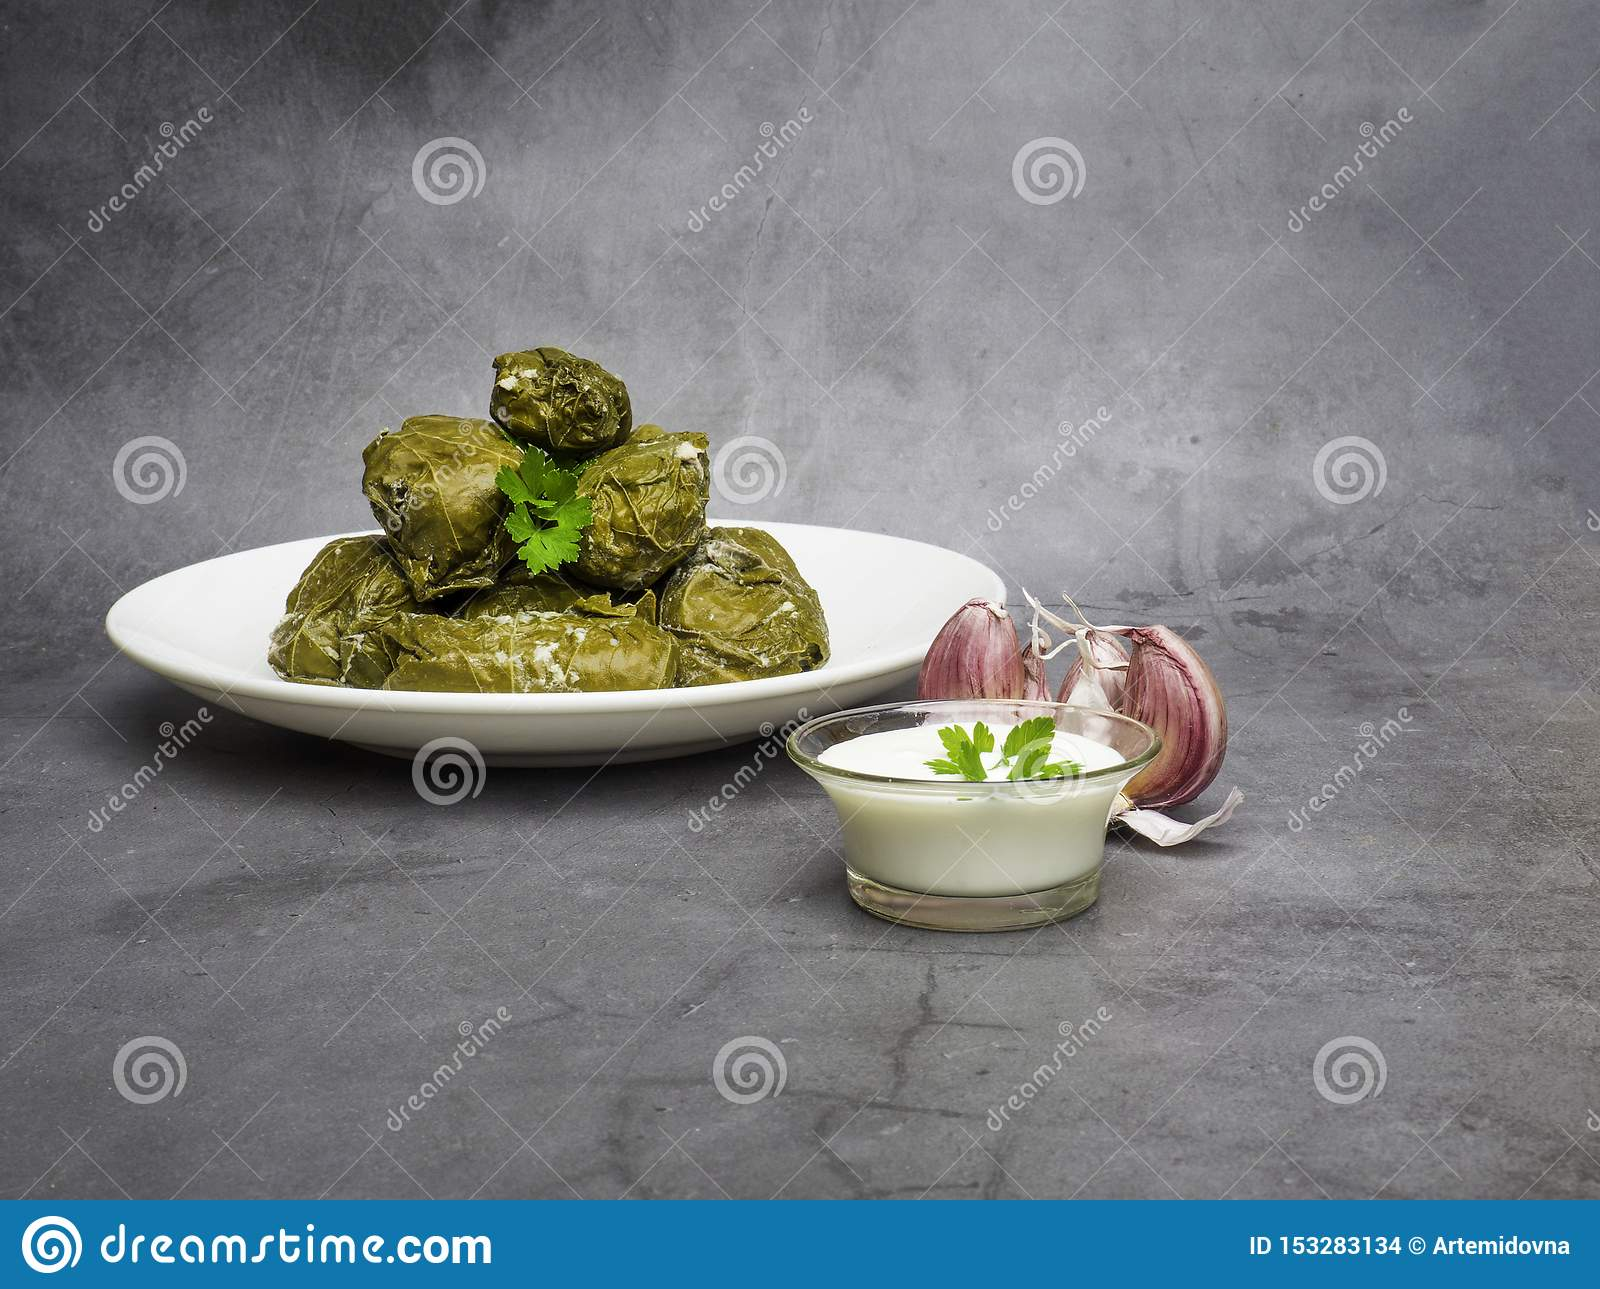 Dolma tolma, sarma - stuffed grape leaves with rice and meat. Traditional Caucasian, Ottoman, Turkish and Greek cuisine